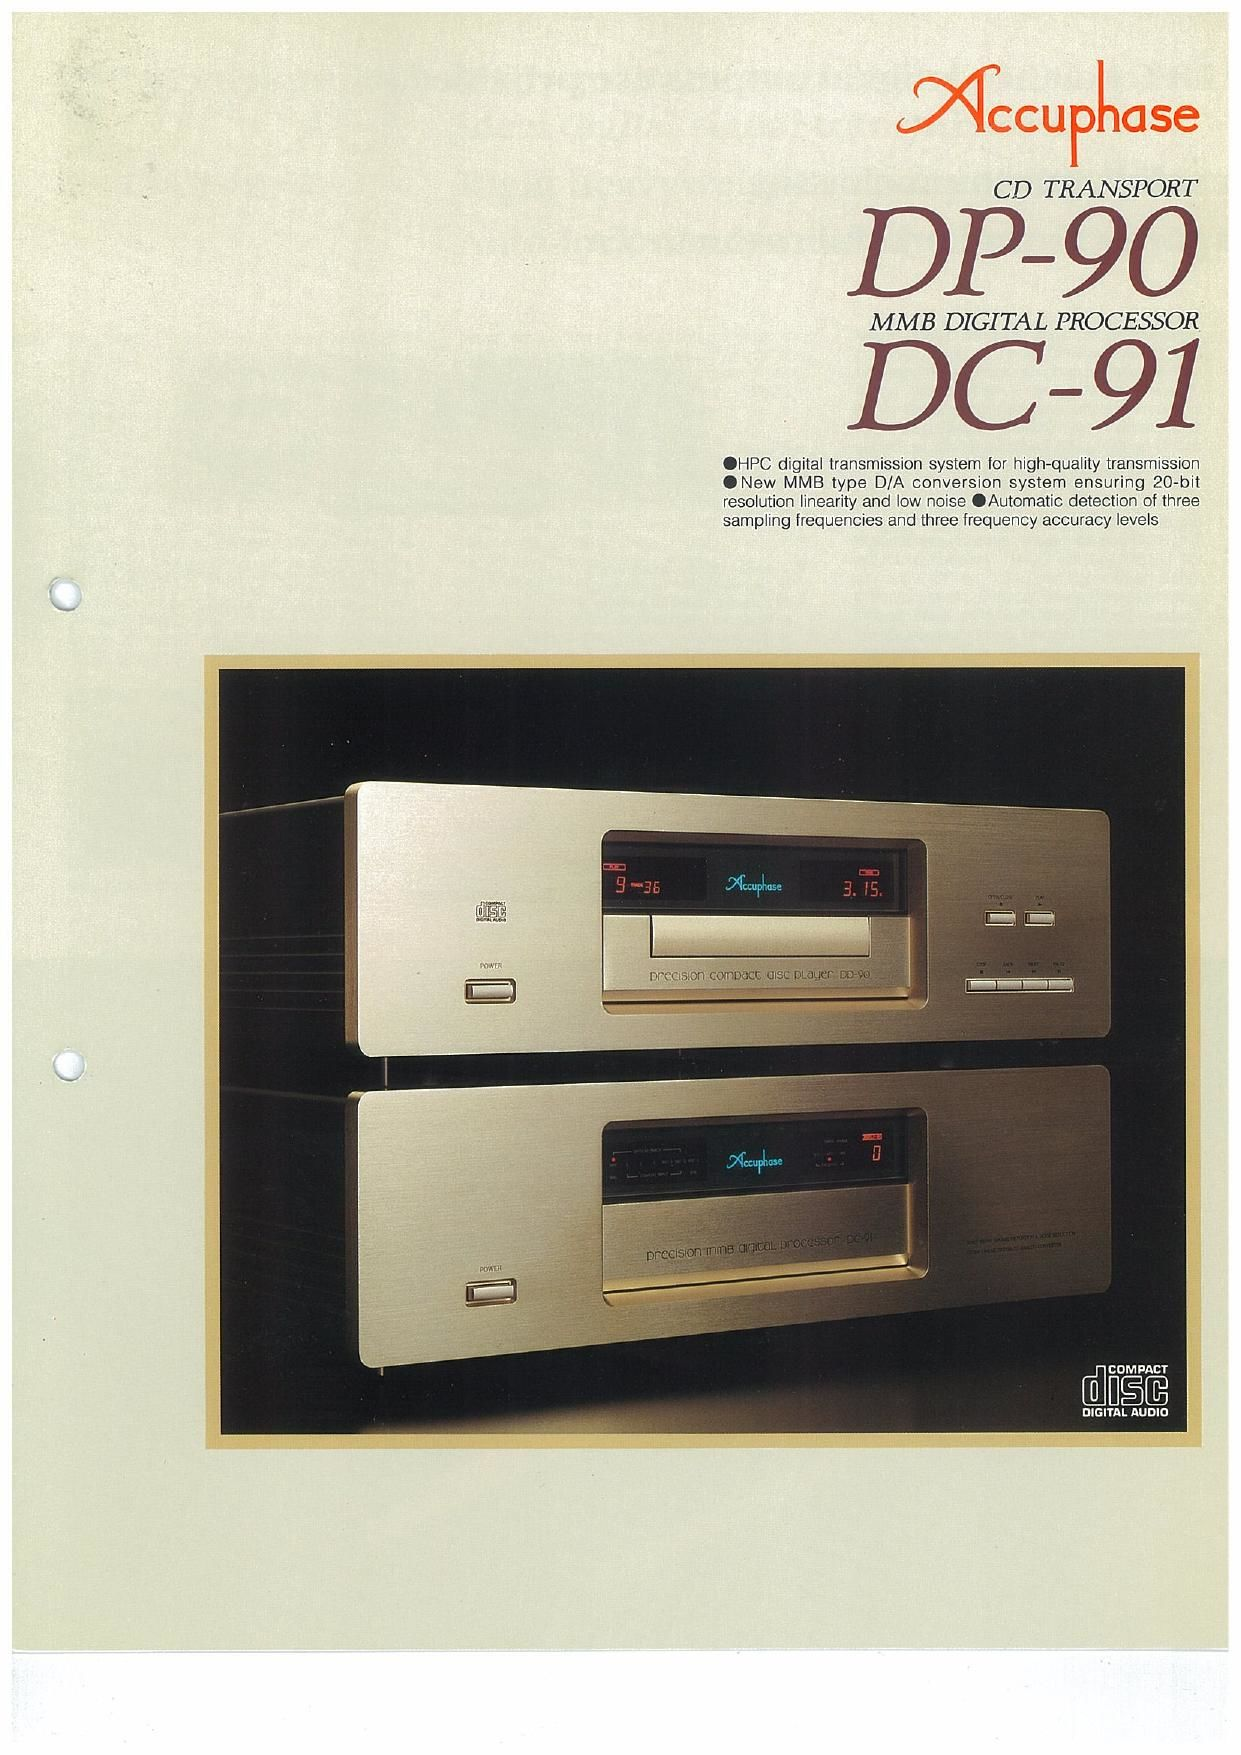 Accuphase DP 90 Brochure